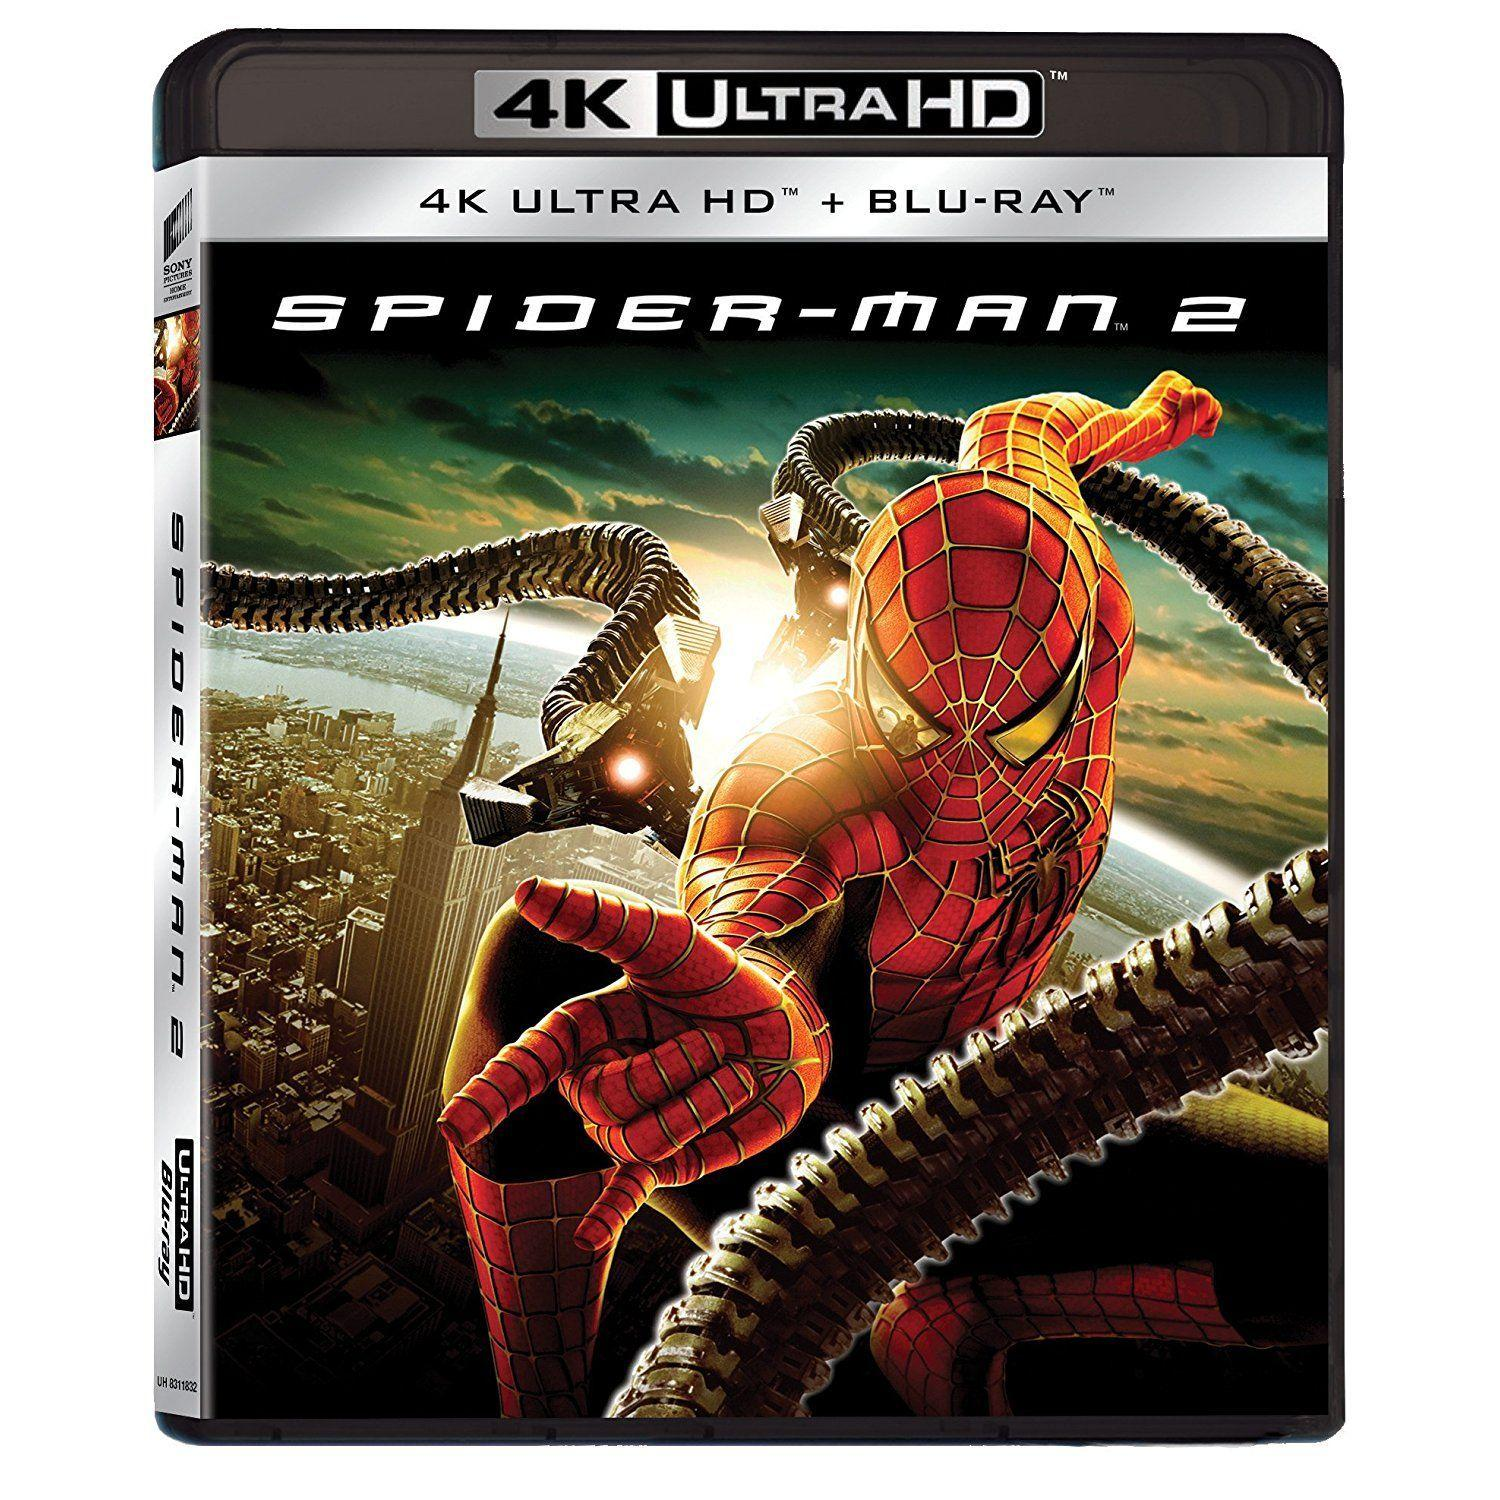 4K SPIDER-MAN 2 [&BLU RAY]